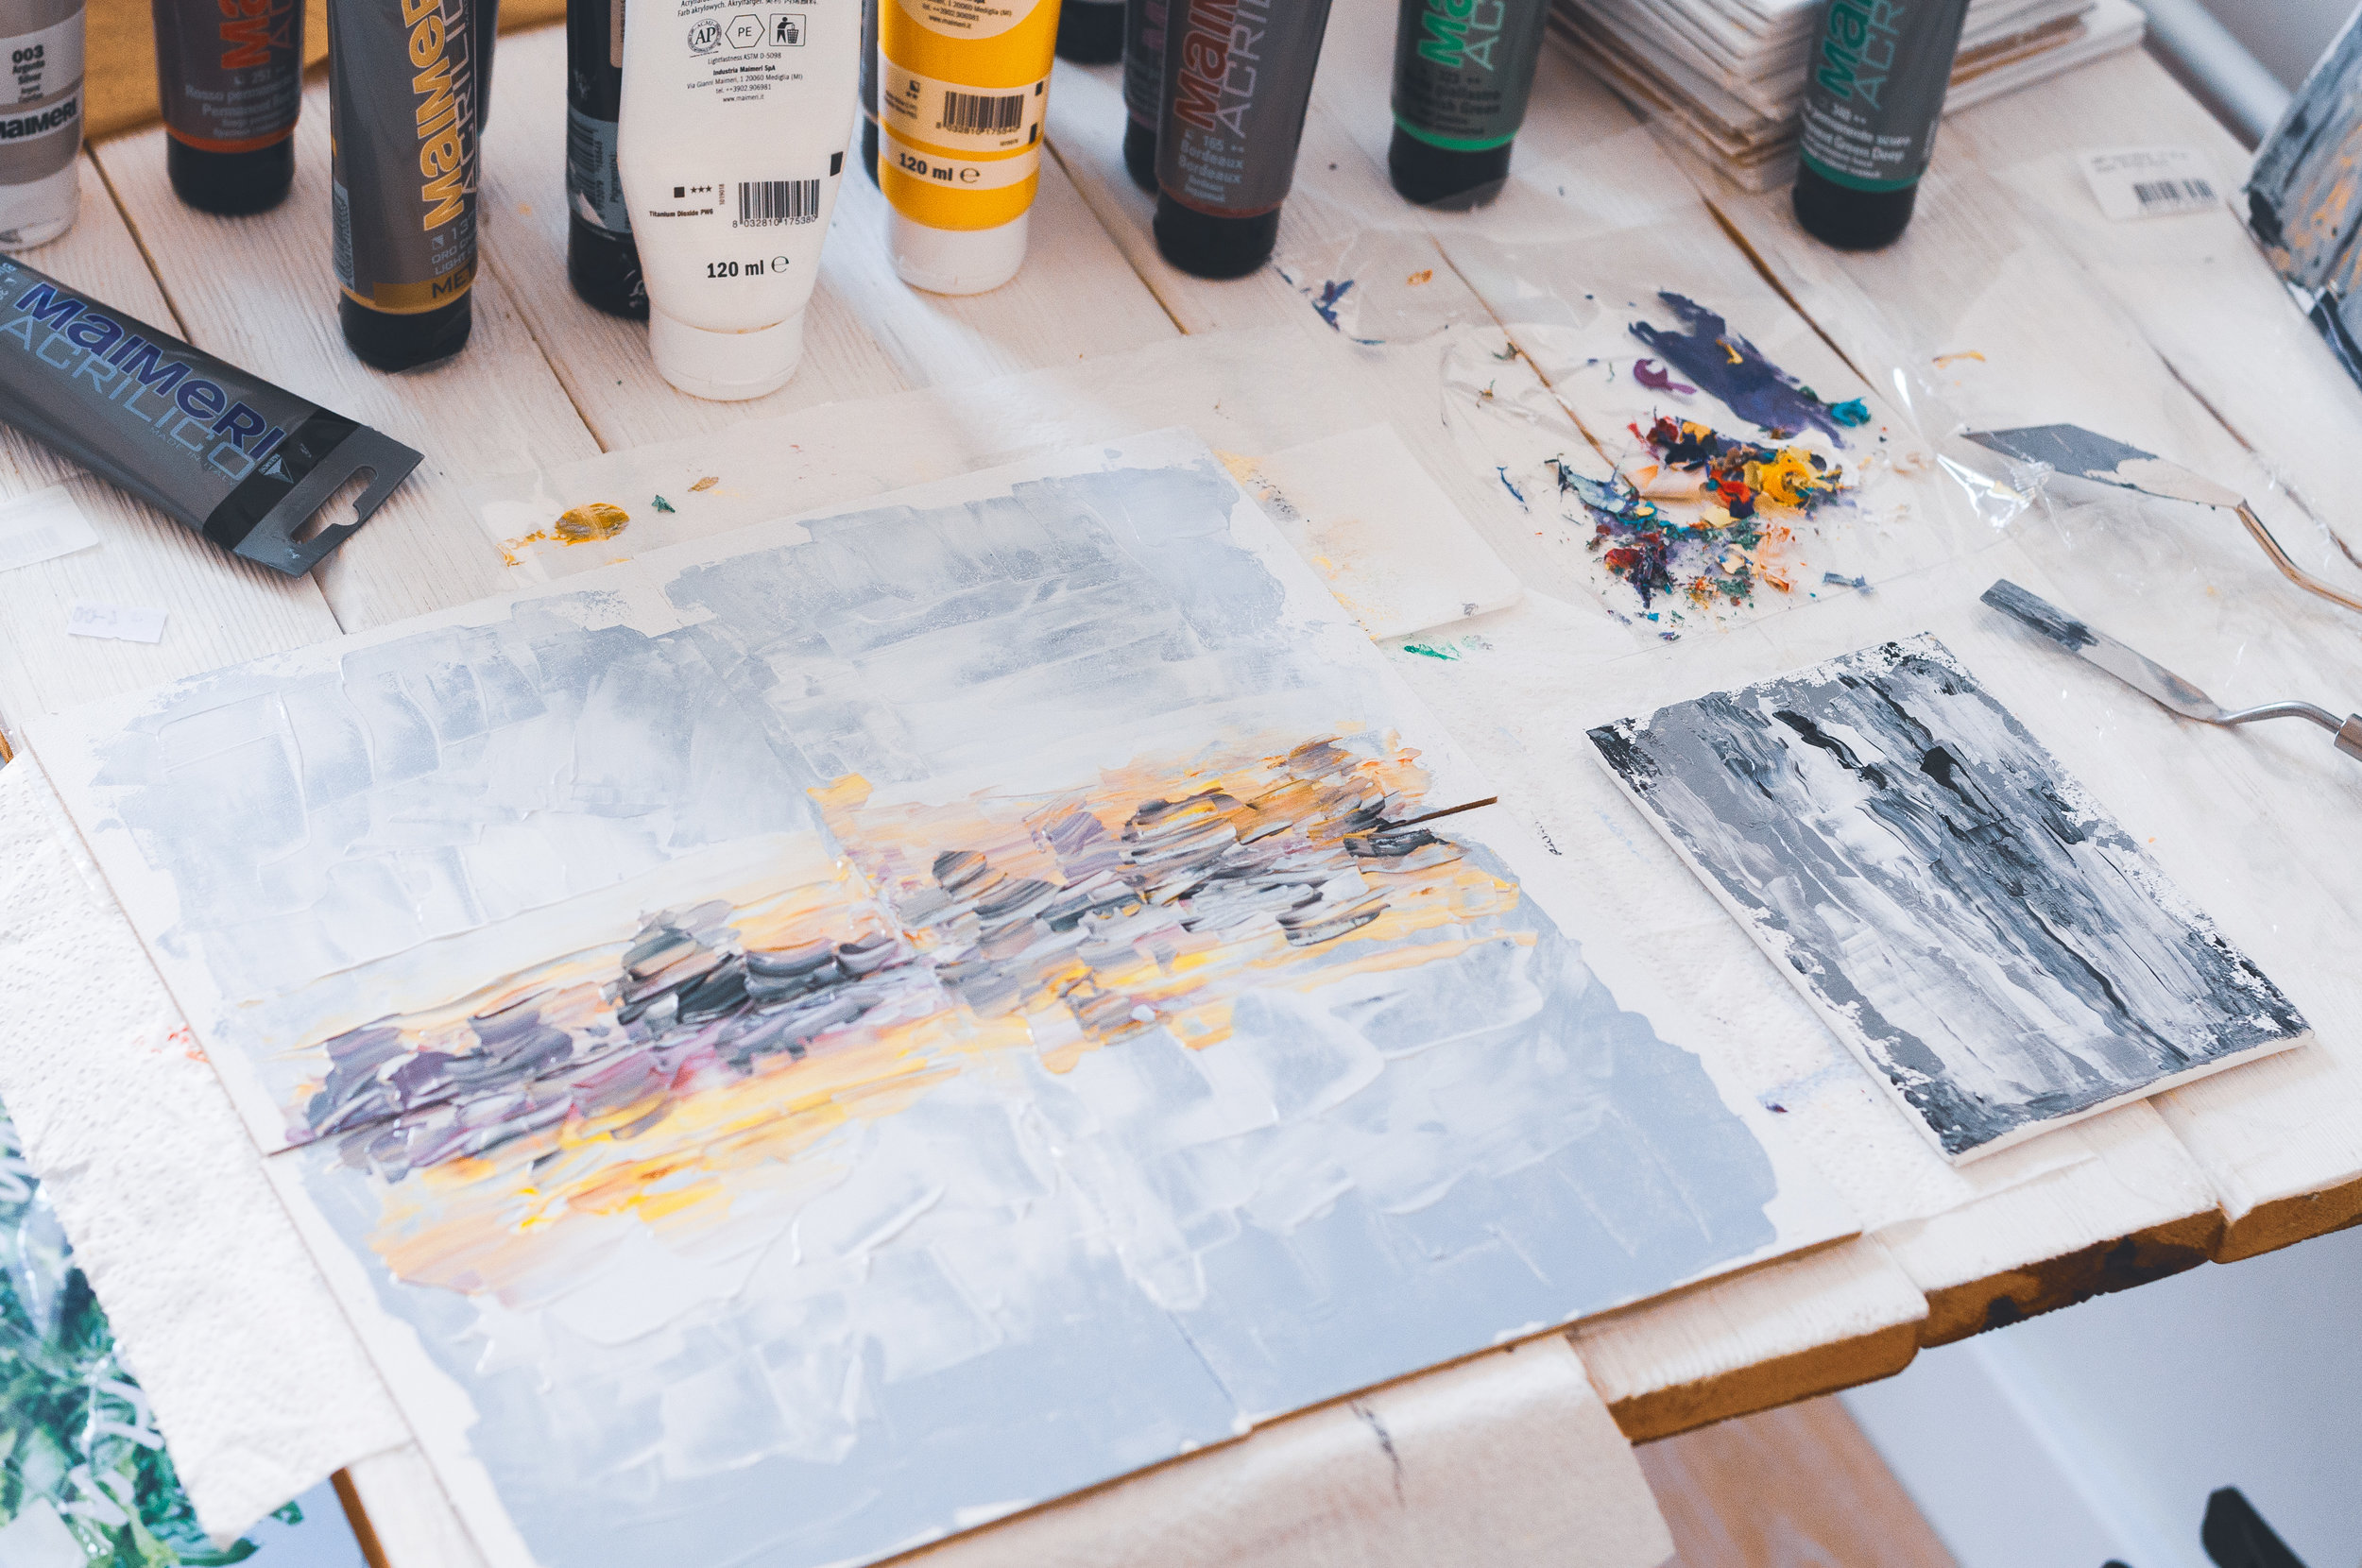 Art Acquisition - We offer art acquisition for projects we are working on. We work with a number or artists and art consultants to ensure that the correct artwork is matched to a project and client.